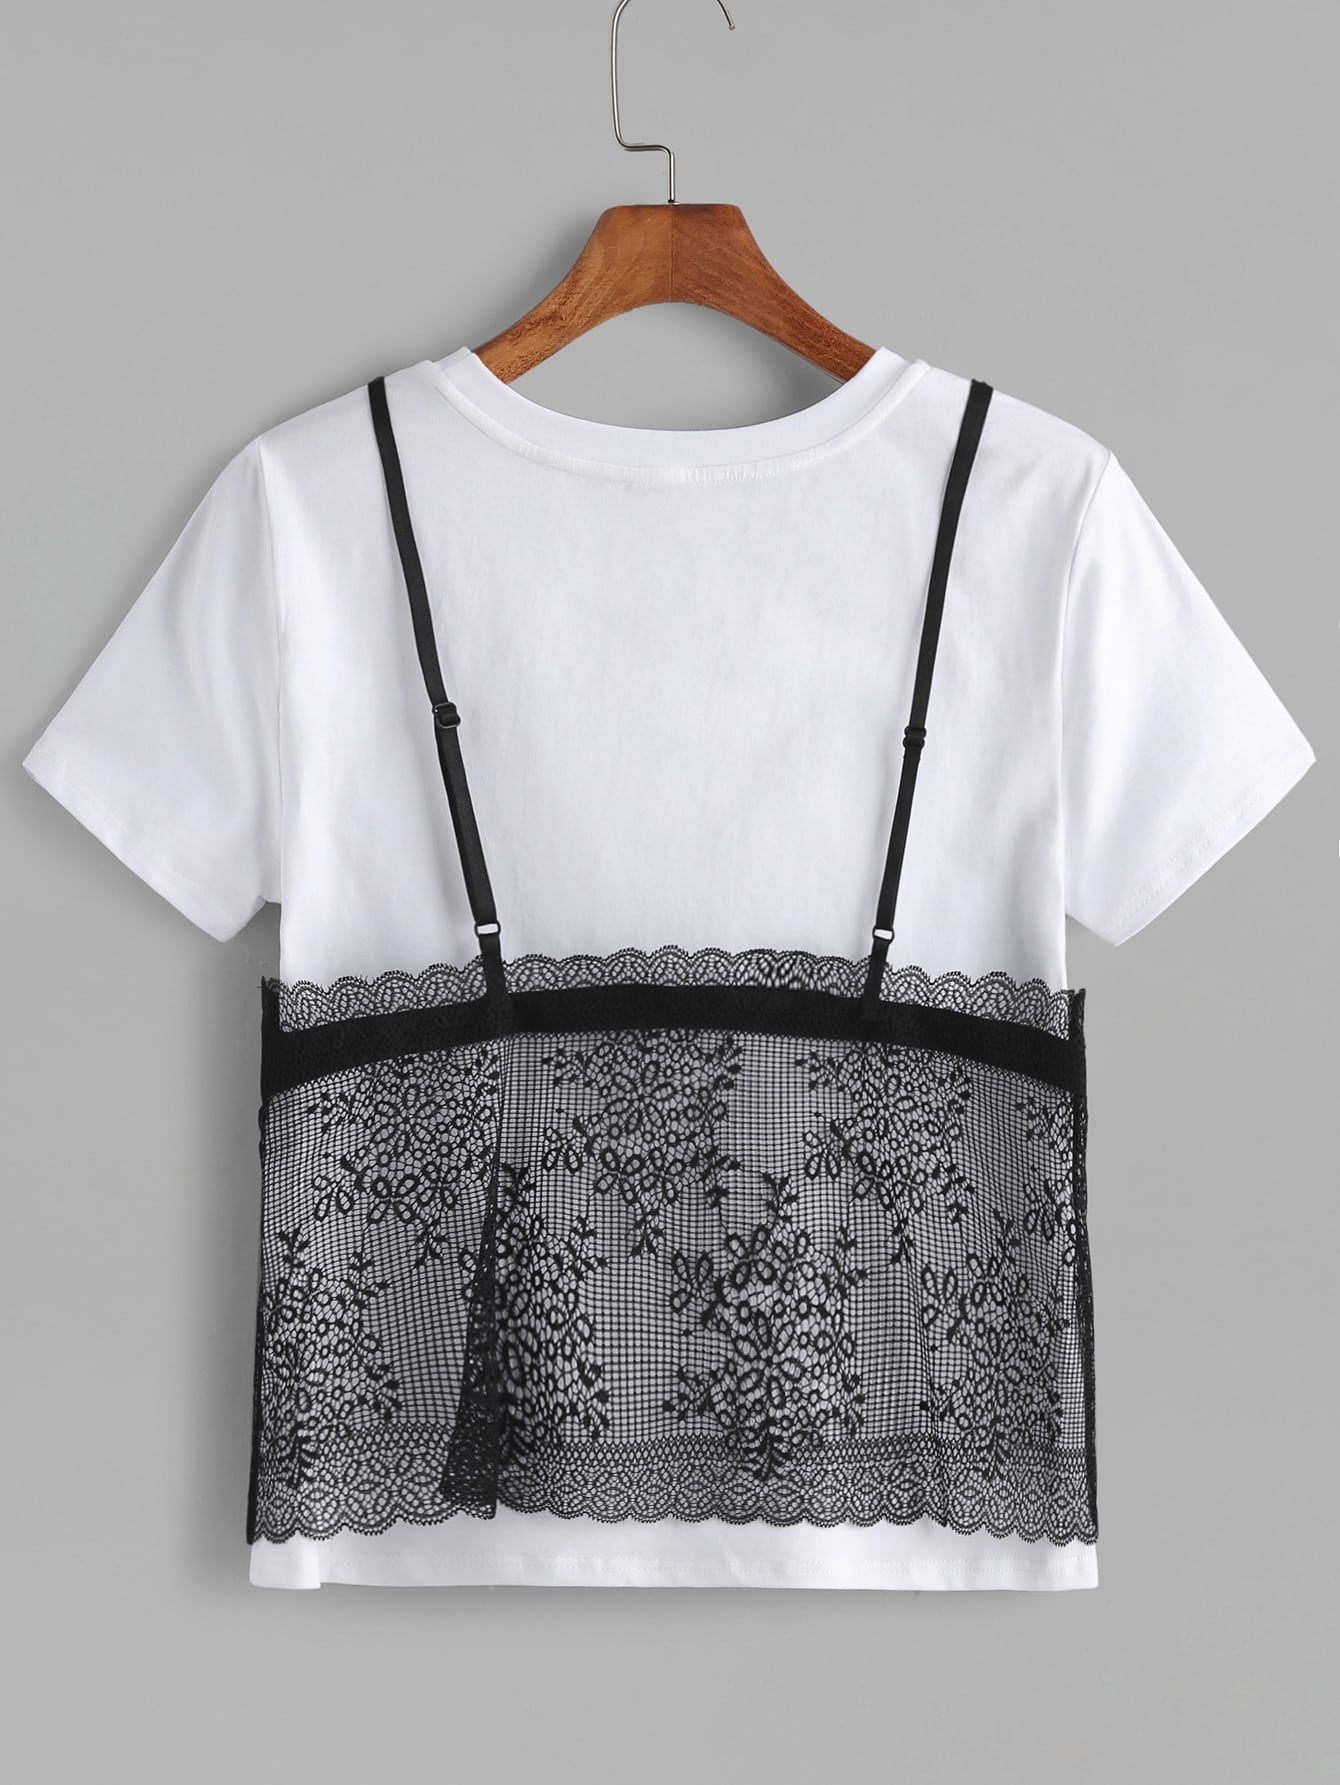 Contrast Floral Lace Cami Overlay T-shirt